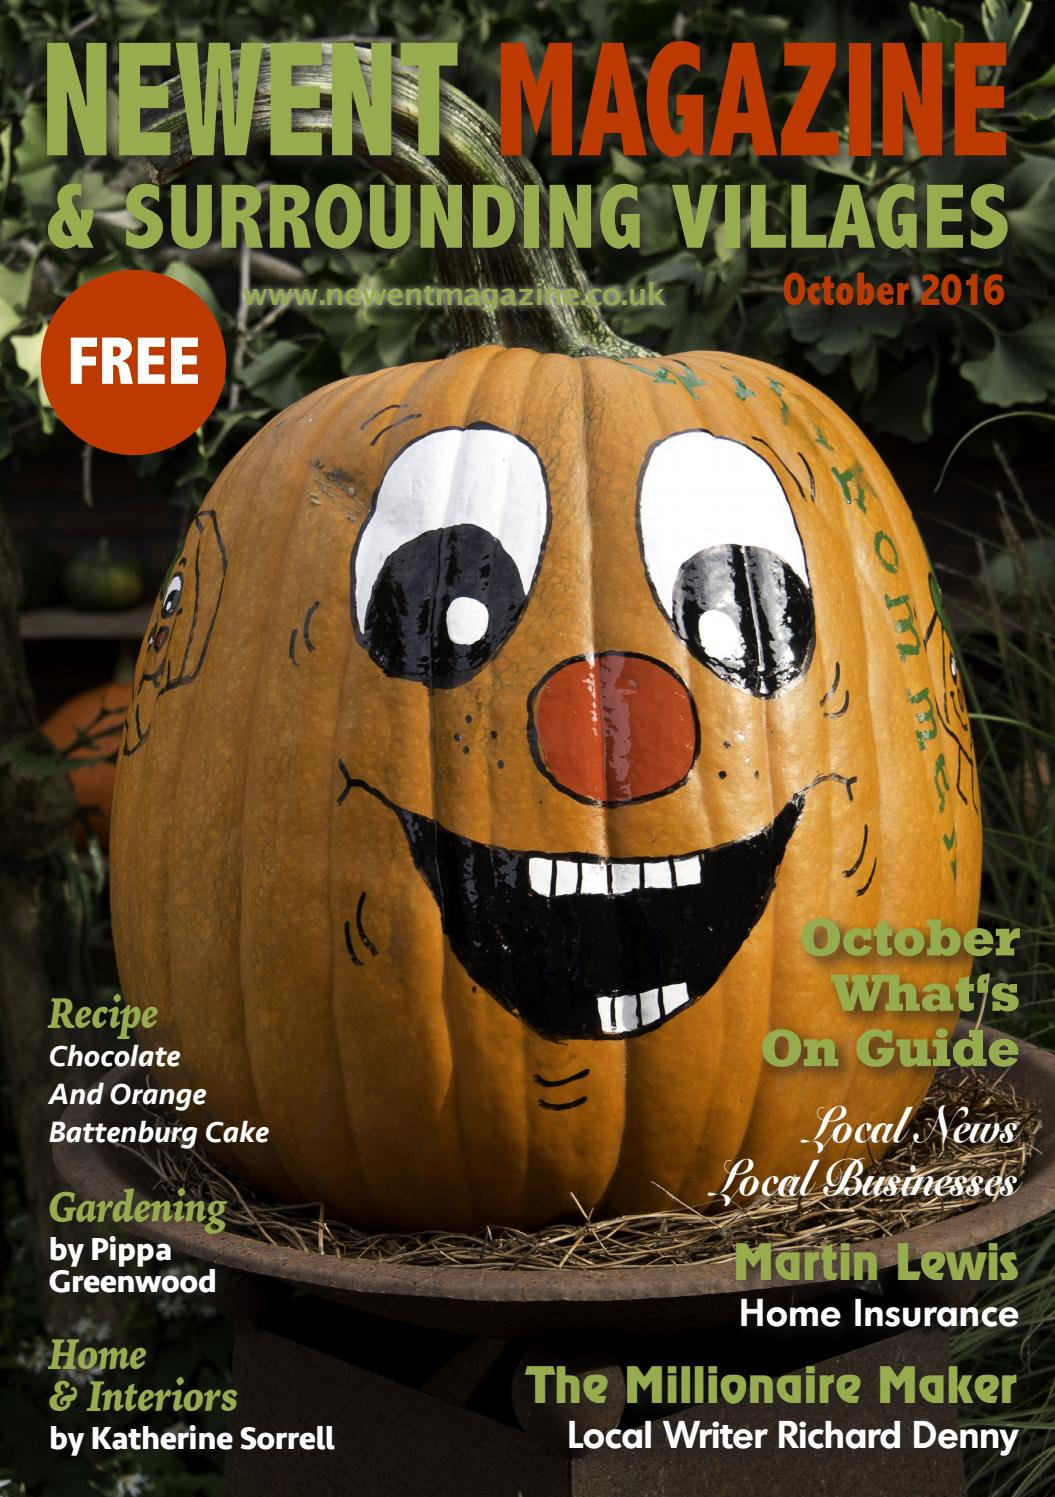 Newent Magazine October16 by Glos Directories - issuu